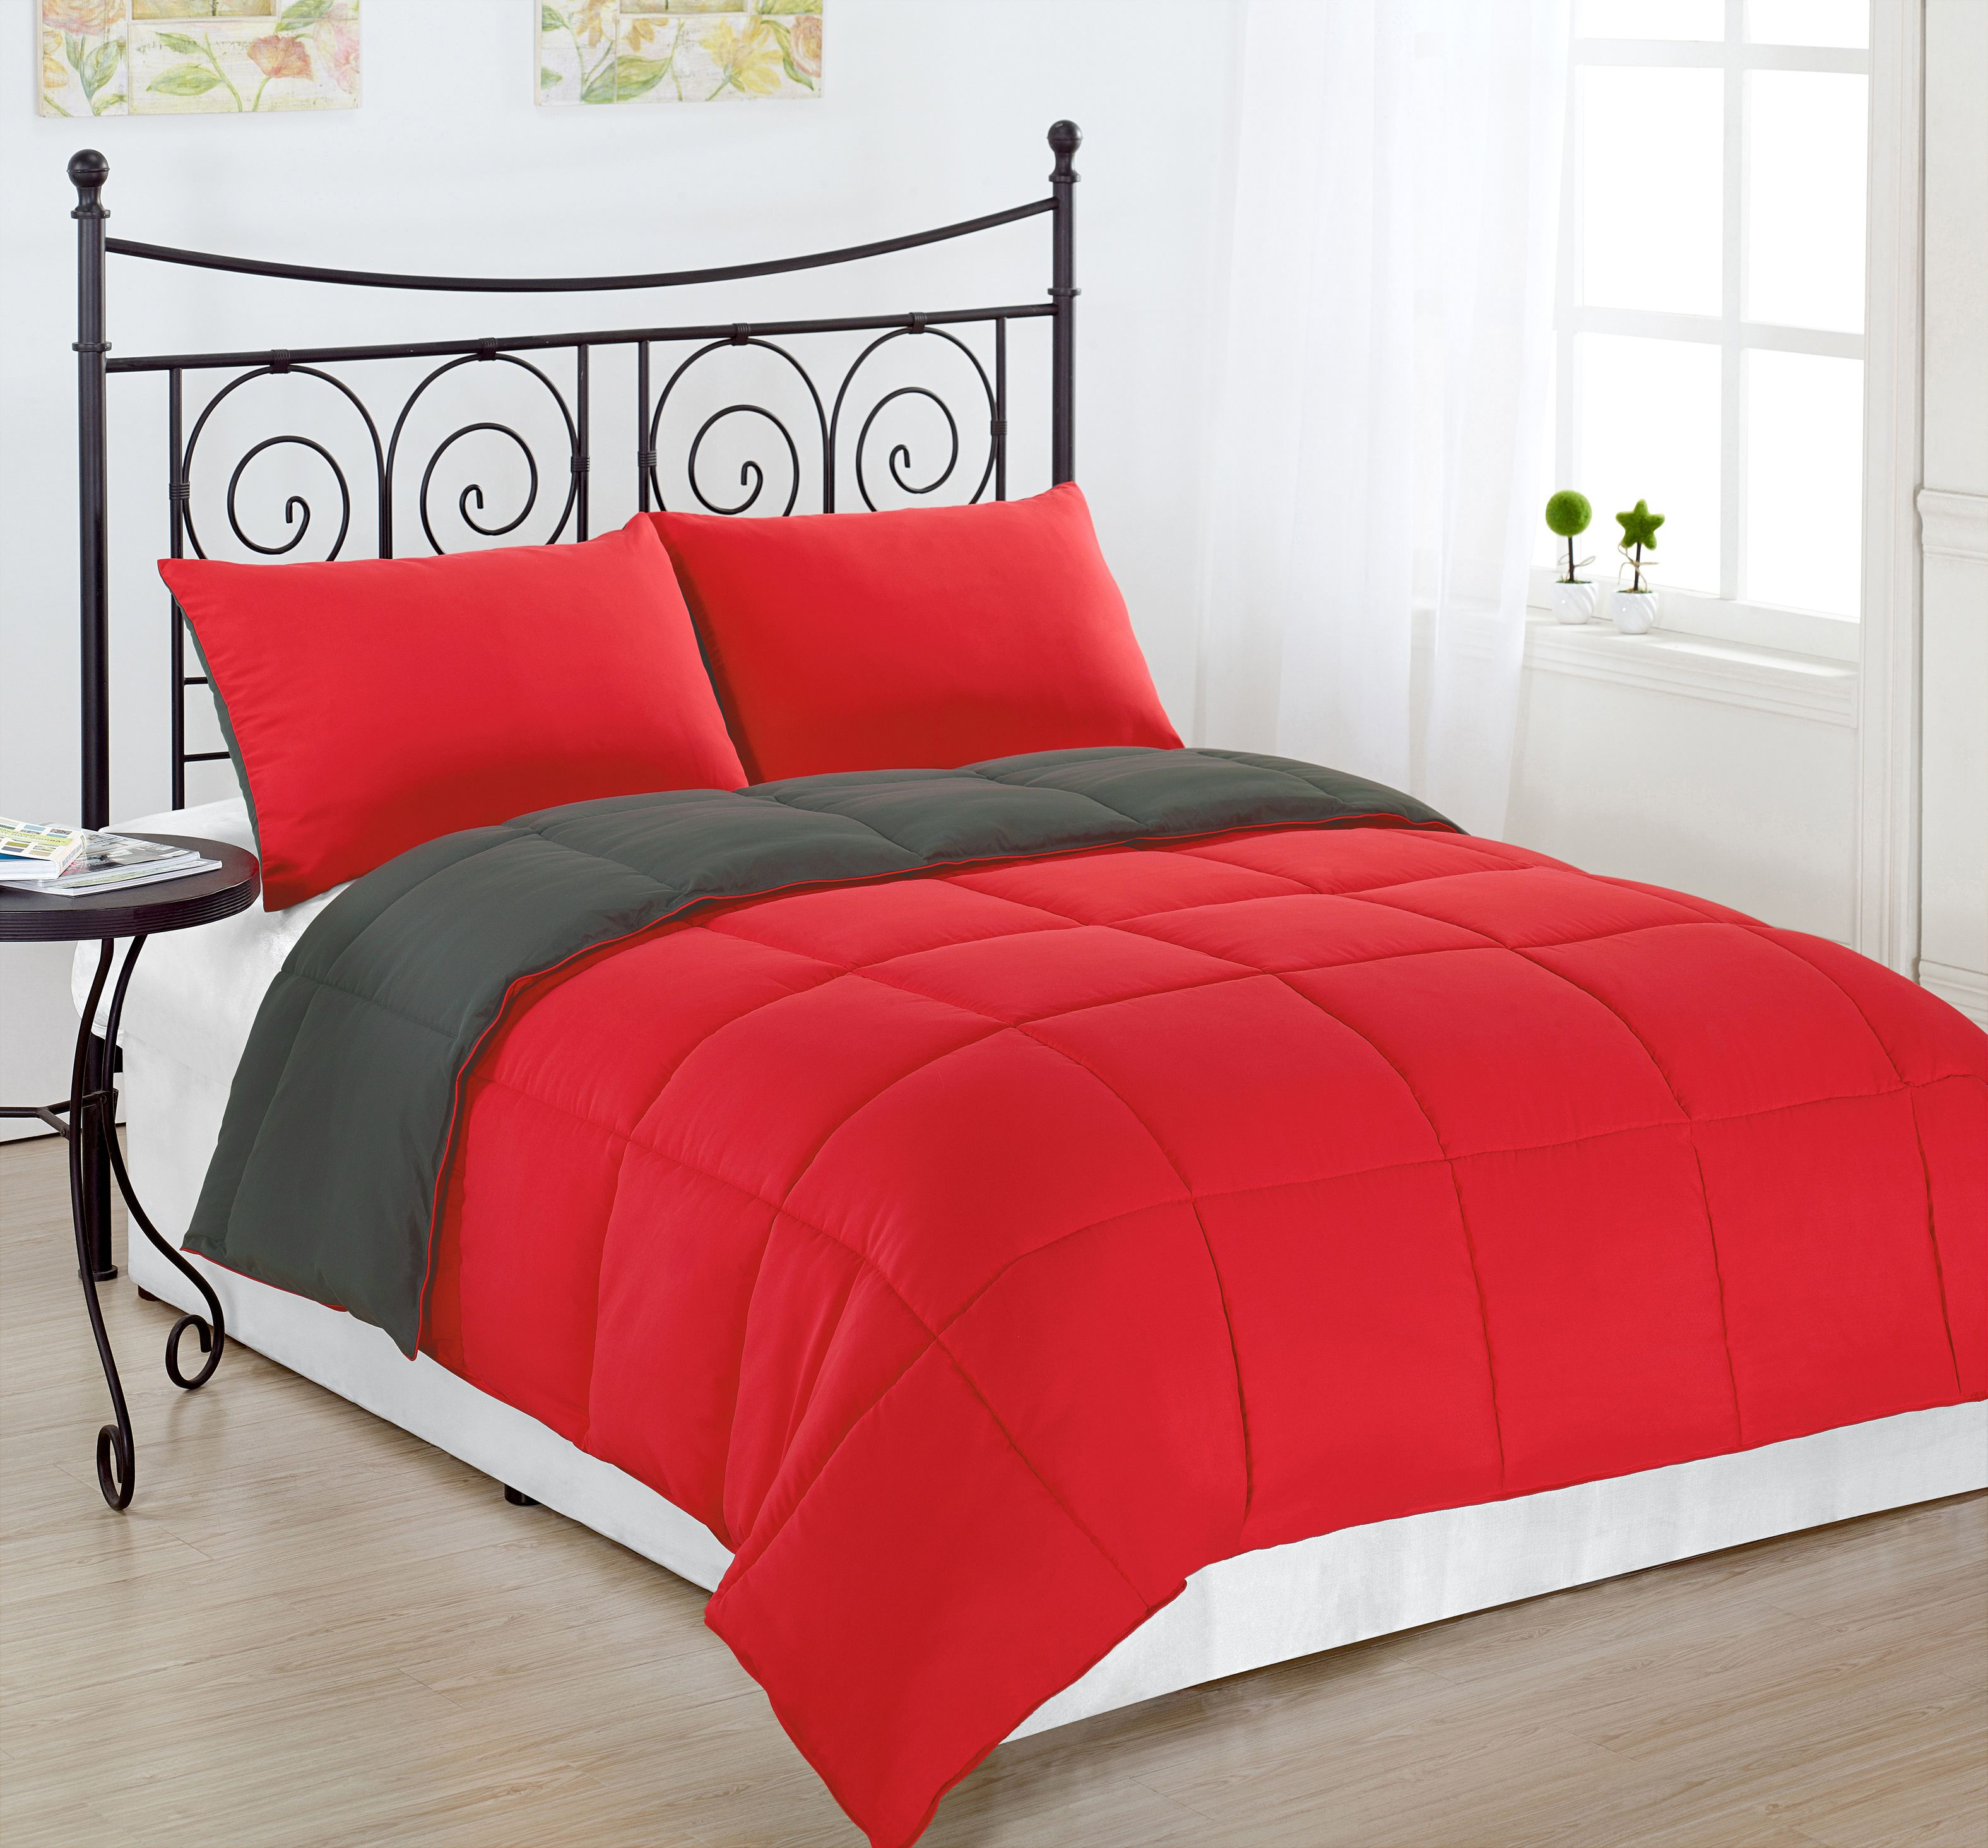 Reversible Collection 3pc KING Size Down Alternative Comforter set Red/Grey Color